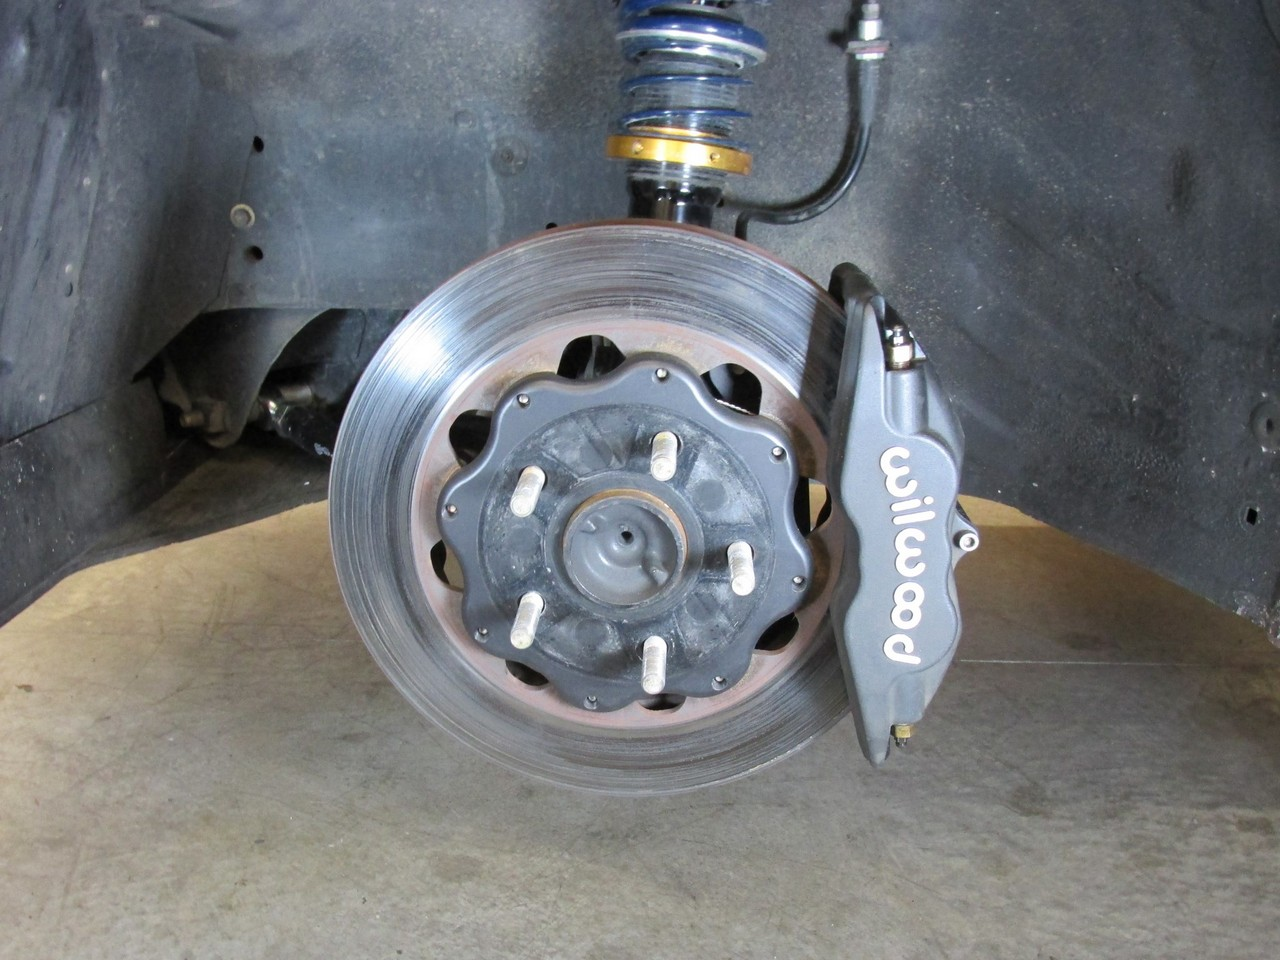 New big brake kit coming soon! Light weight & affordable